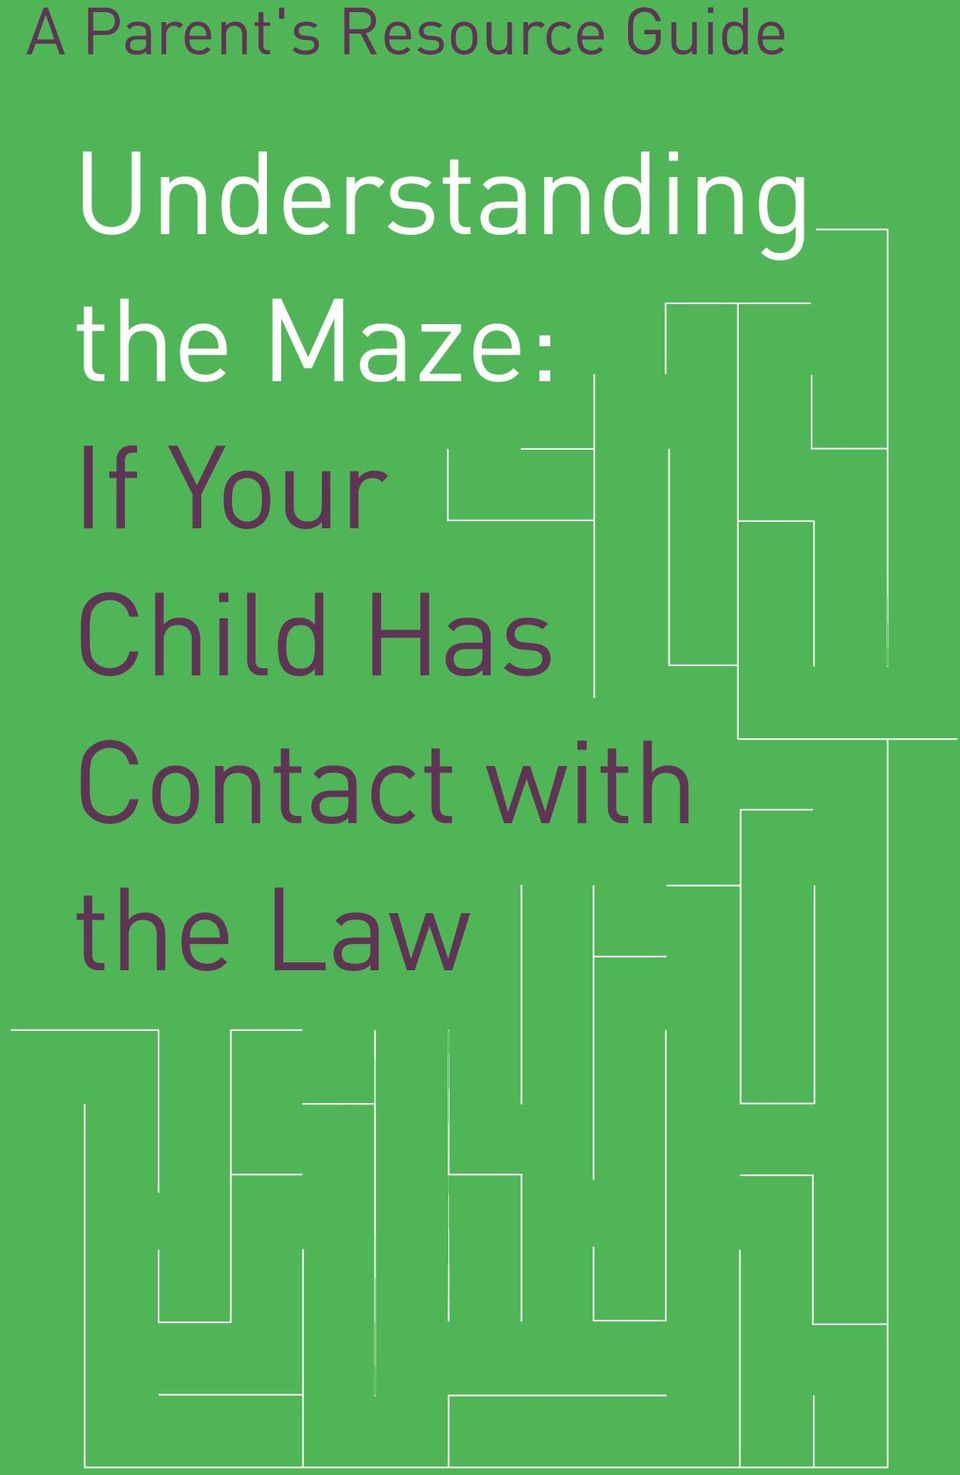 the Maze: If Your